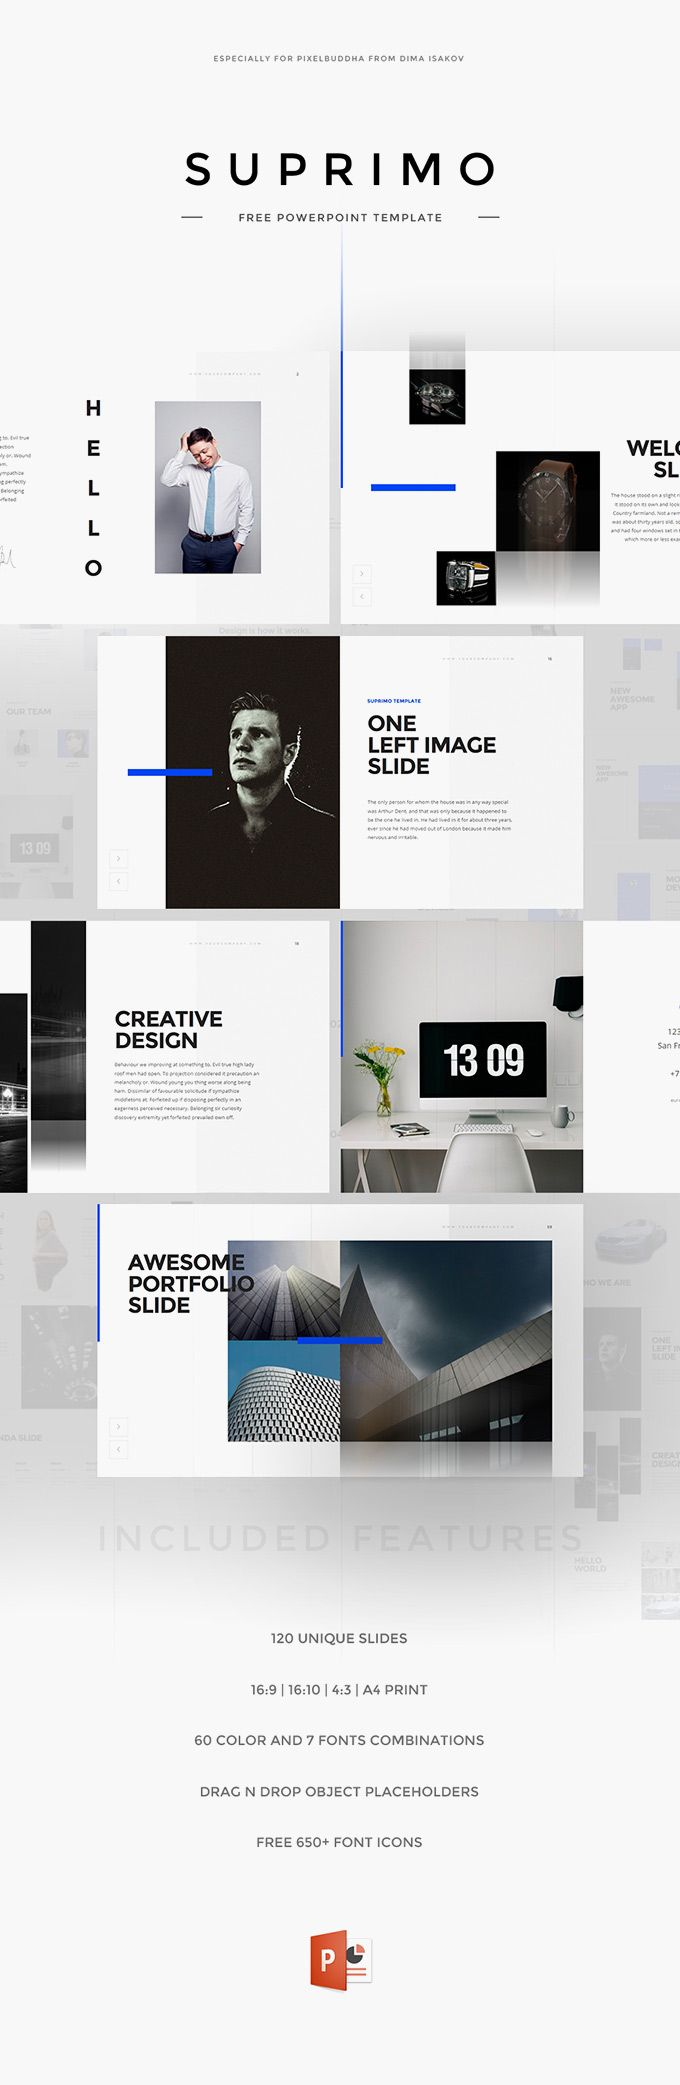 Suprimo PowerPoint Template - download freebie by PixelBuddha